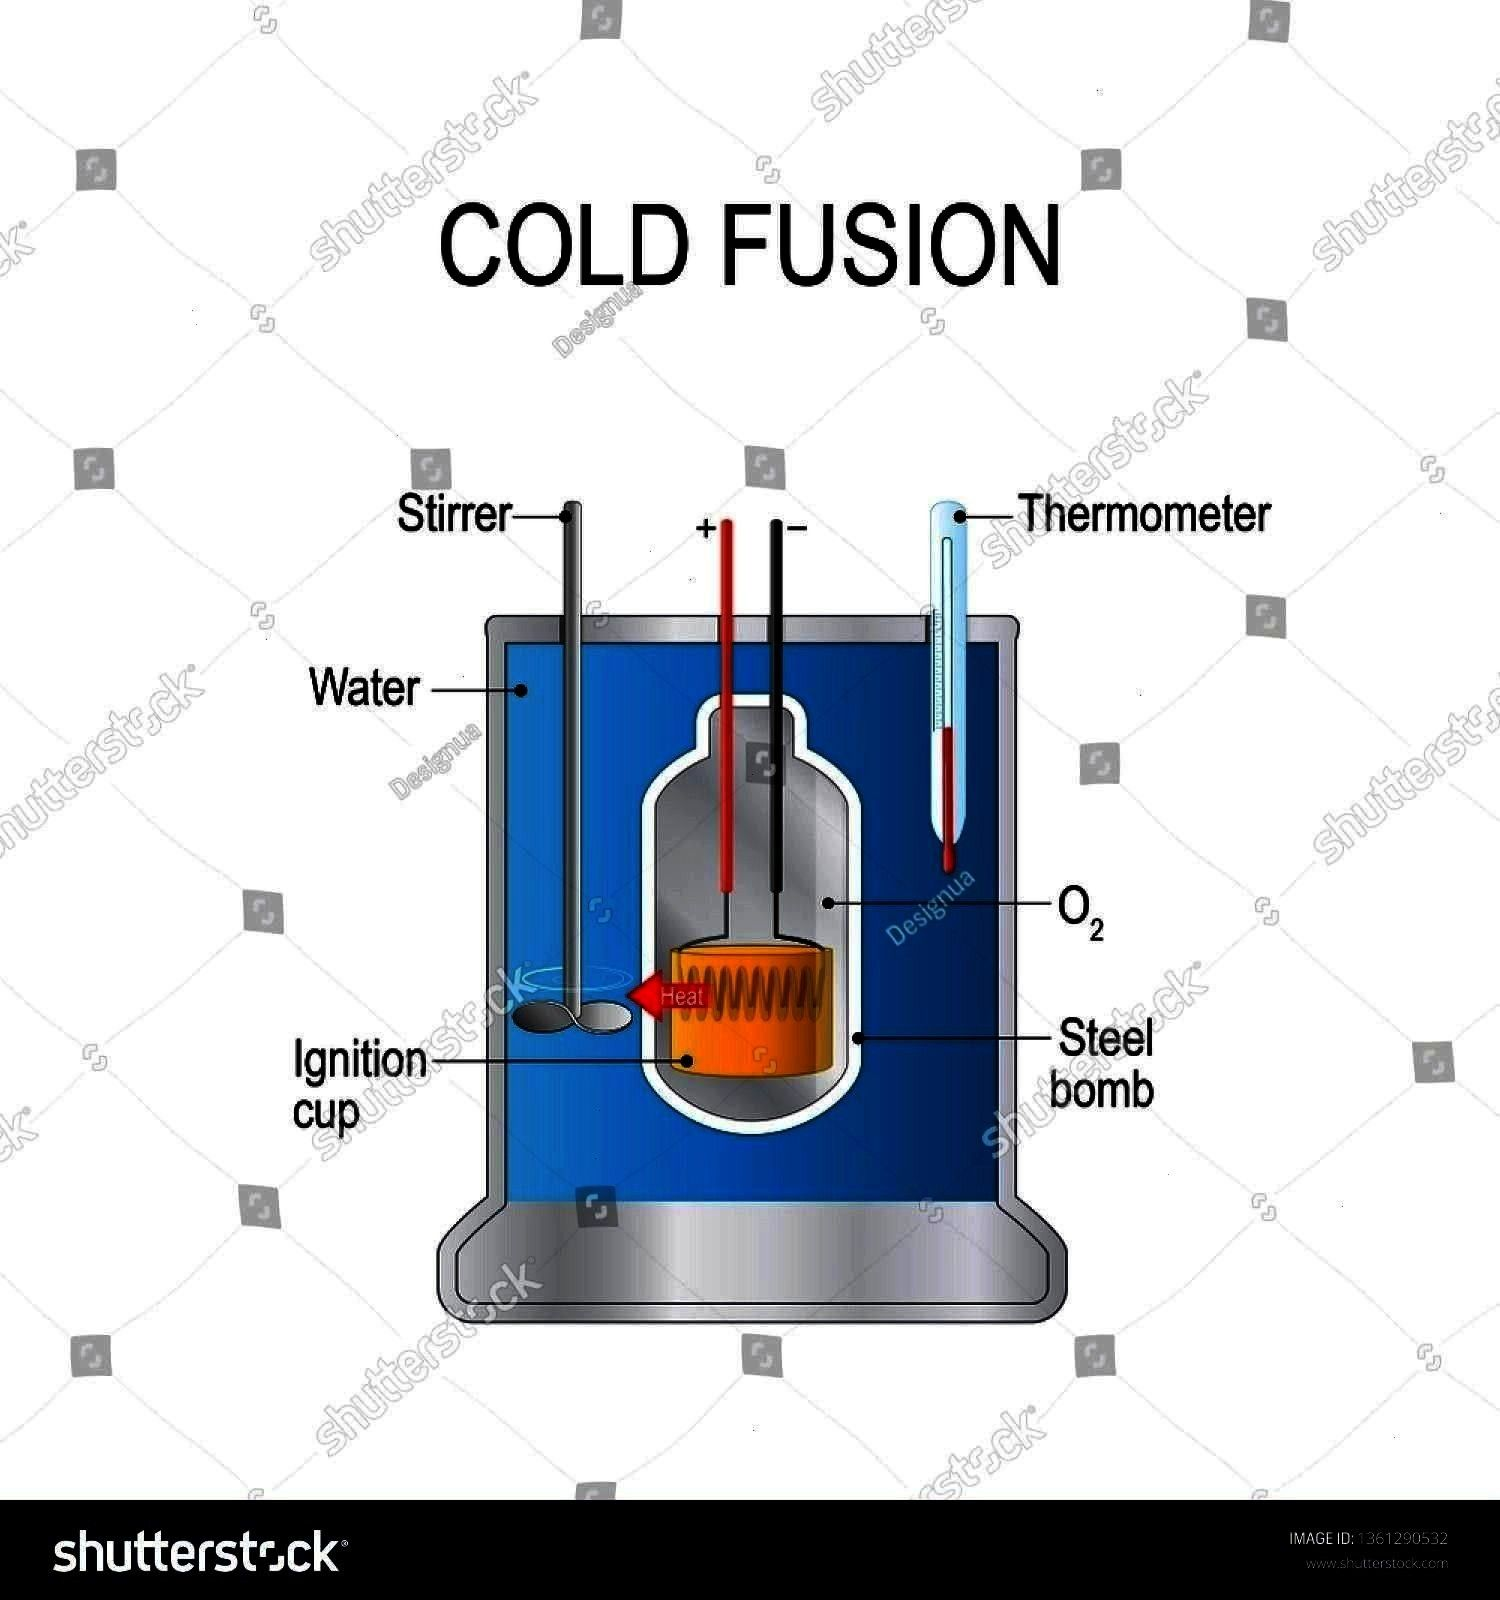 reaction theoretical model of calorimeter Electrolysis cell diagram for educational physical chemistry and science use Cold fusion hypothesized type of nuclear reaction t...